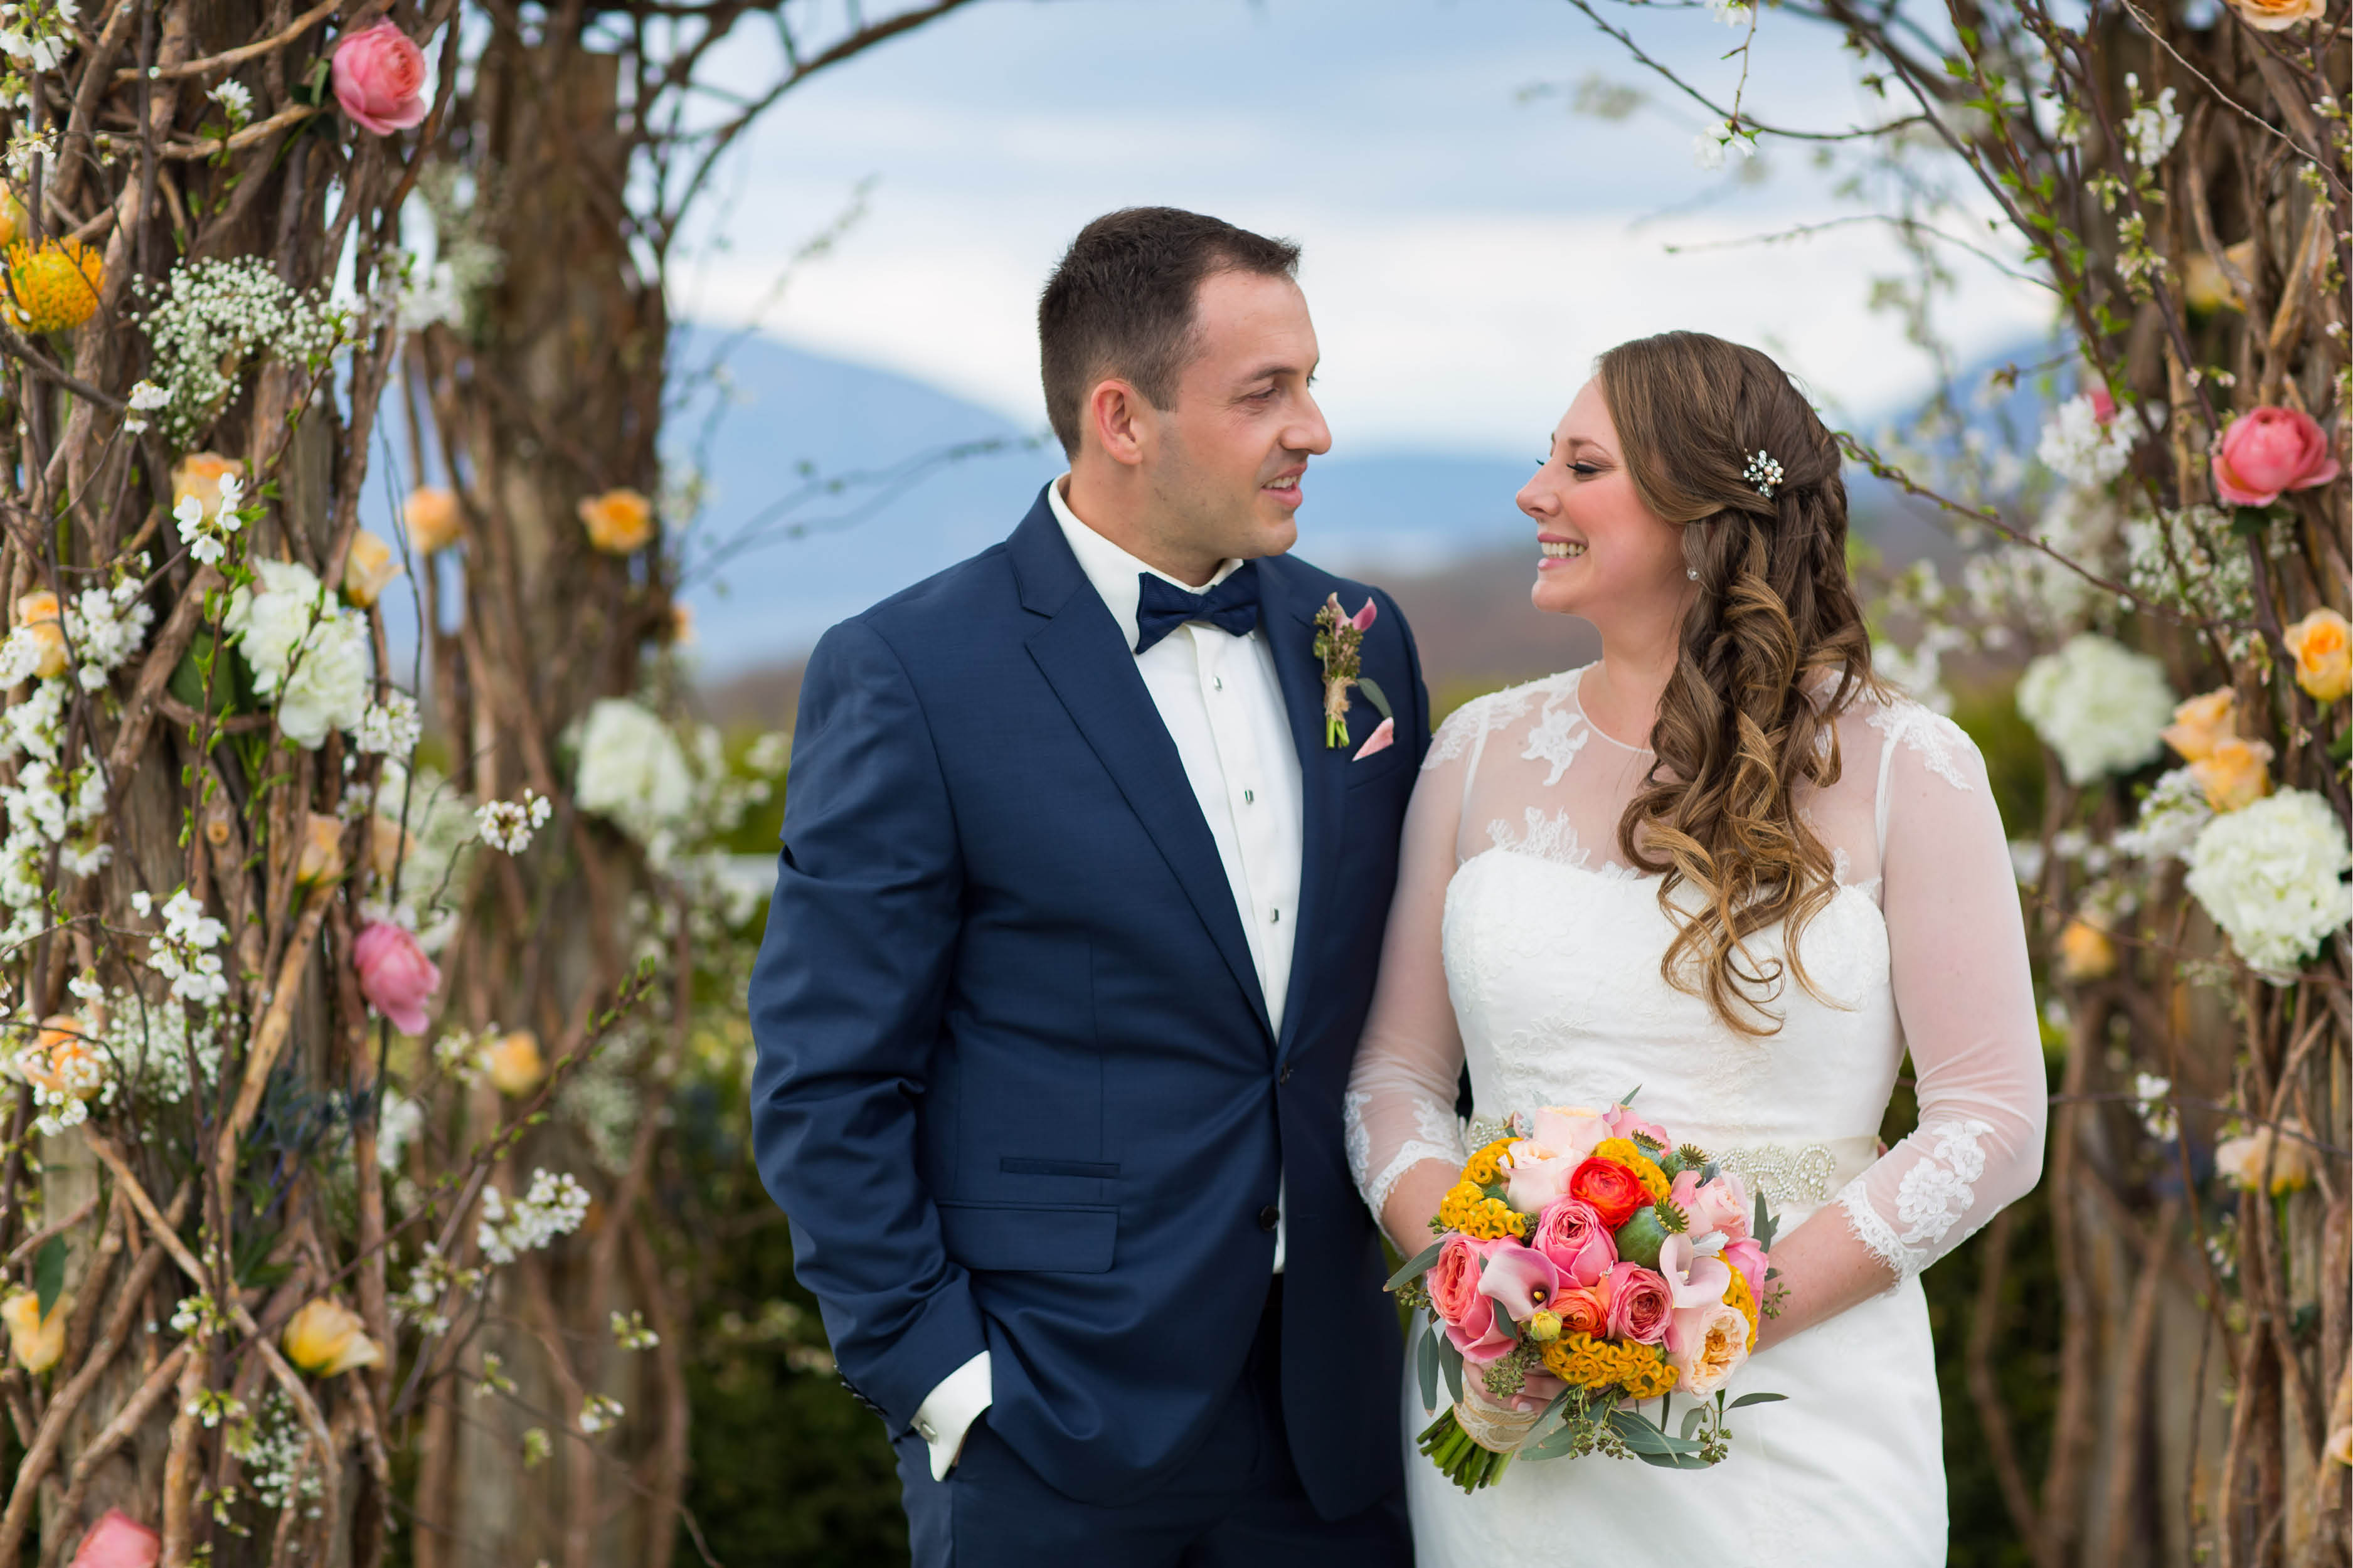 Emma_cleary_photography the Metropolitan Building wedding6